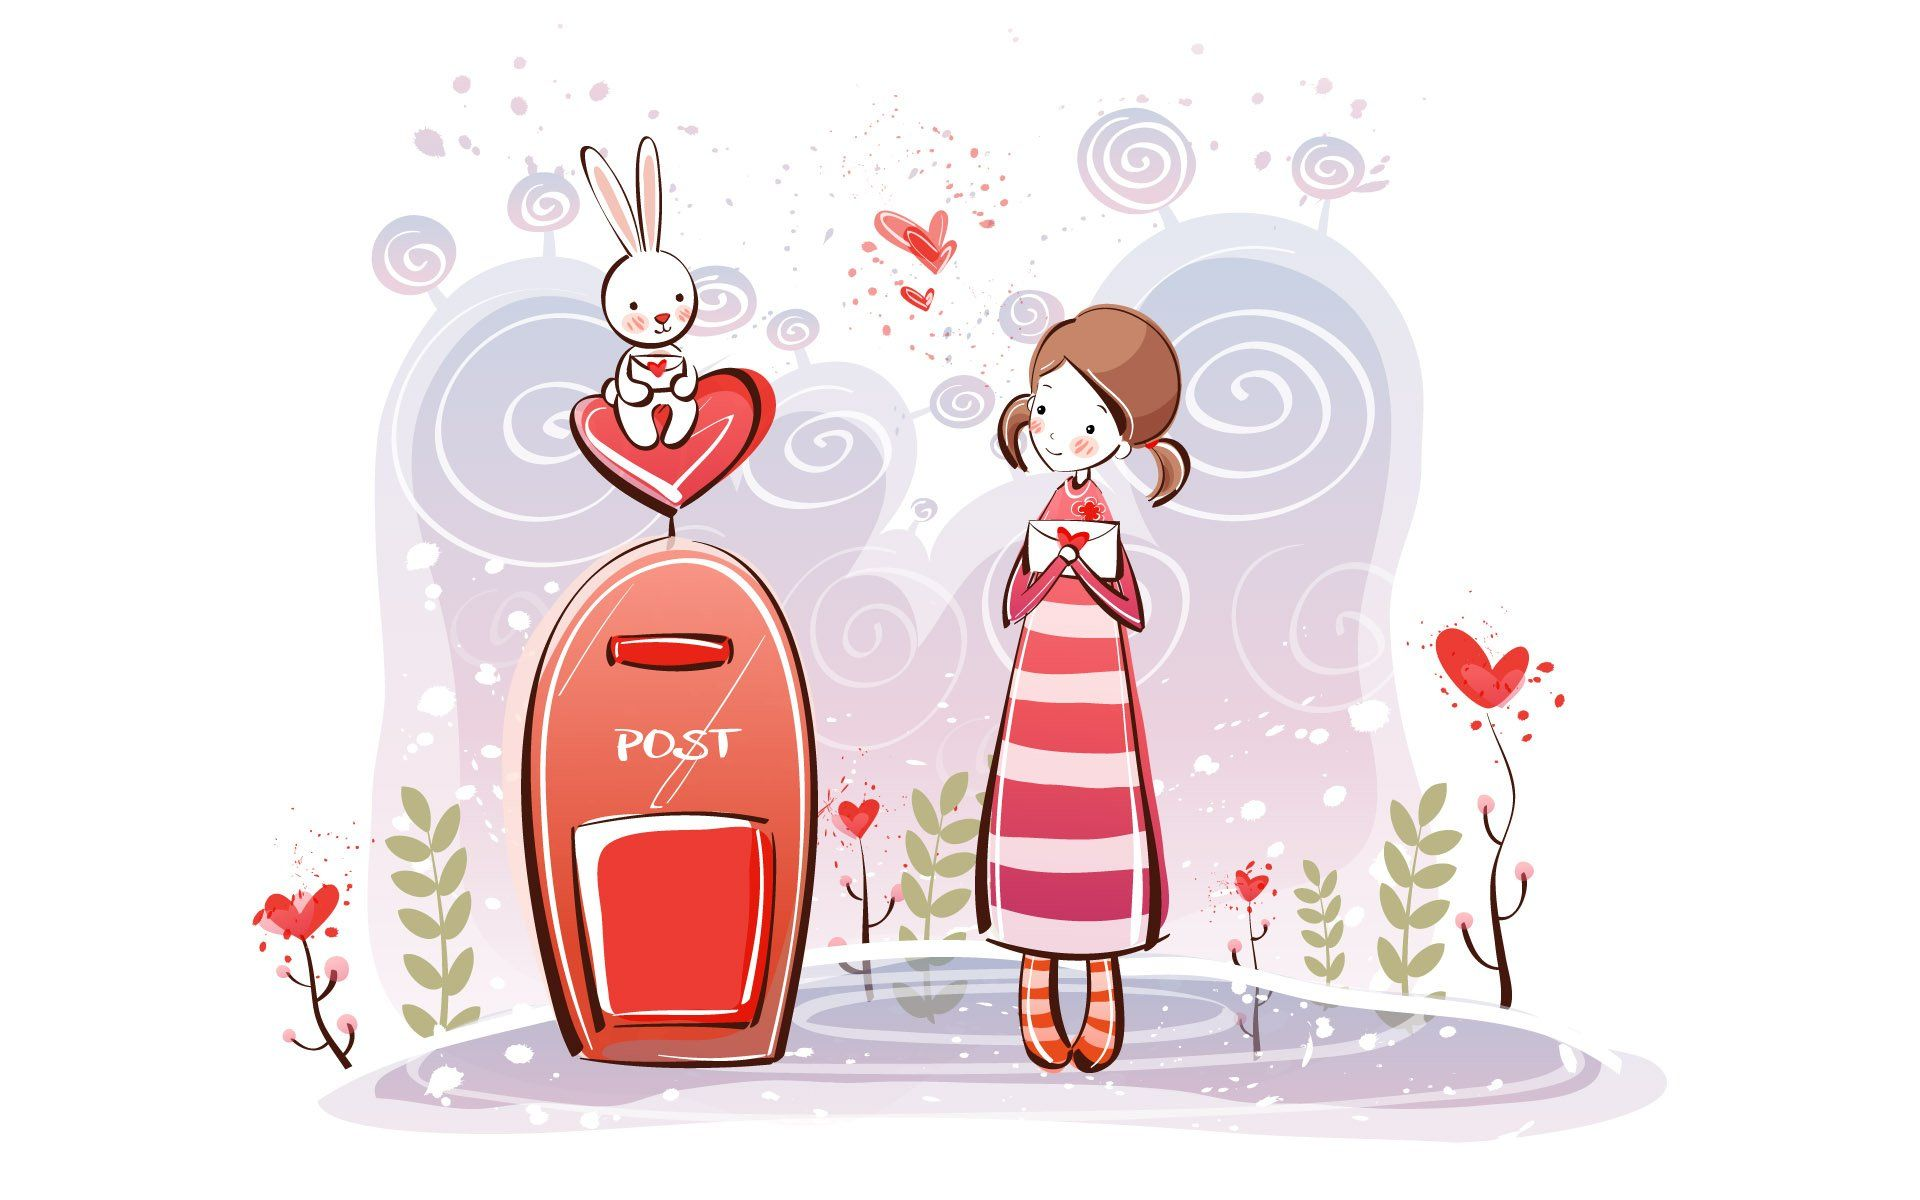 Beautiful Love Couple Cartoon HD Wallpaper Download - 1f8c7f2b4aac54791b9824ac40108cbd  Graphic_391613.jpg